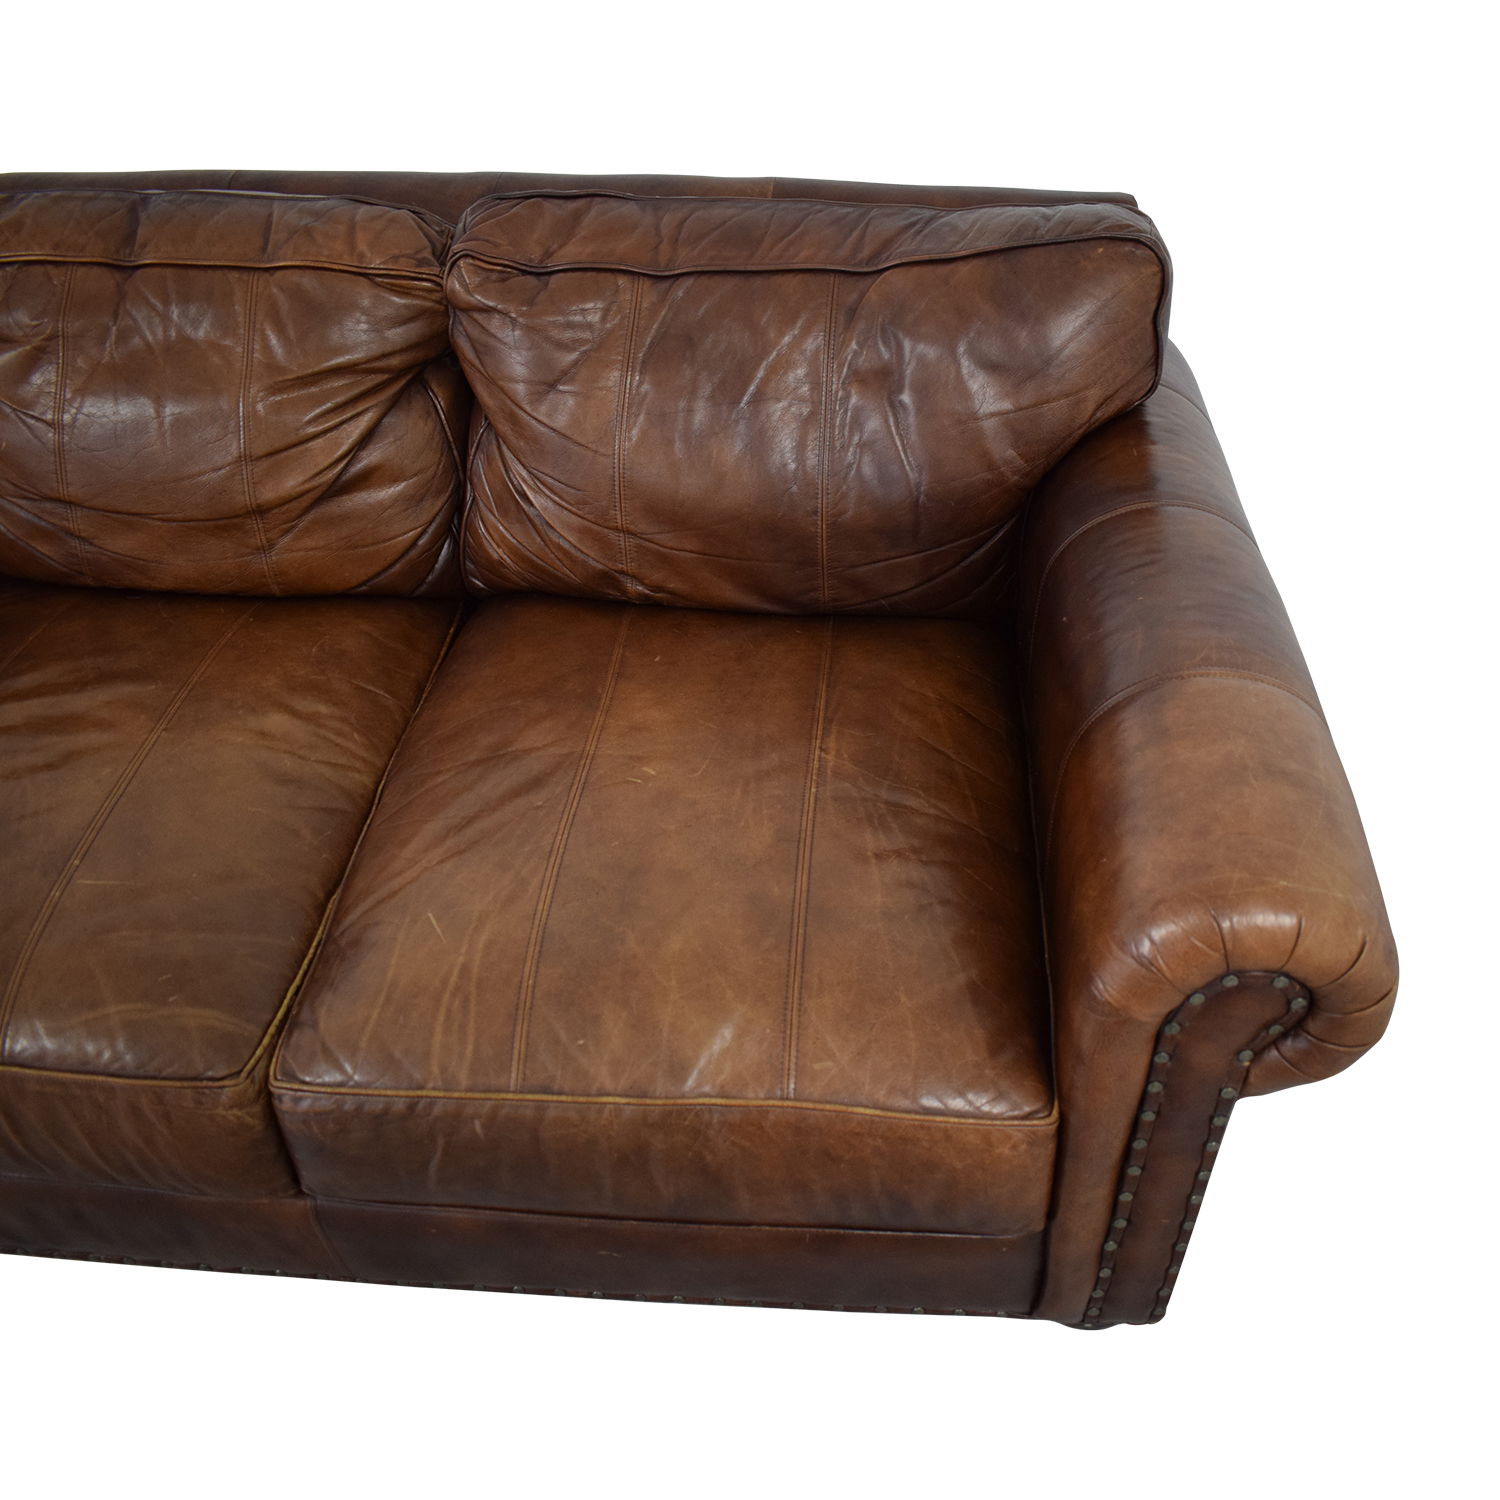 76% OFF - Ethan Allen Ethan Allen Three Cushion Roll Arm Leather Sofa /  Sofas